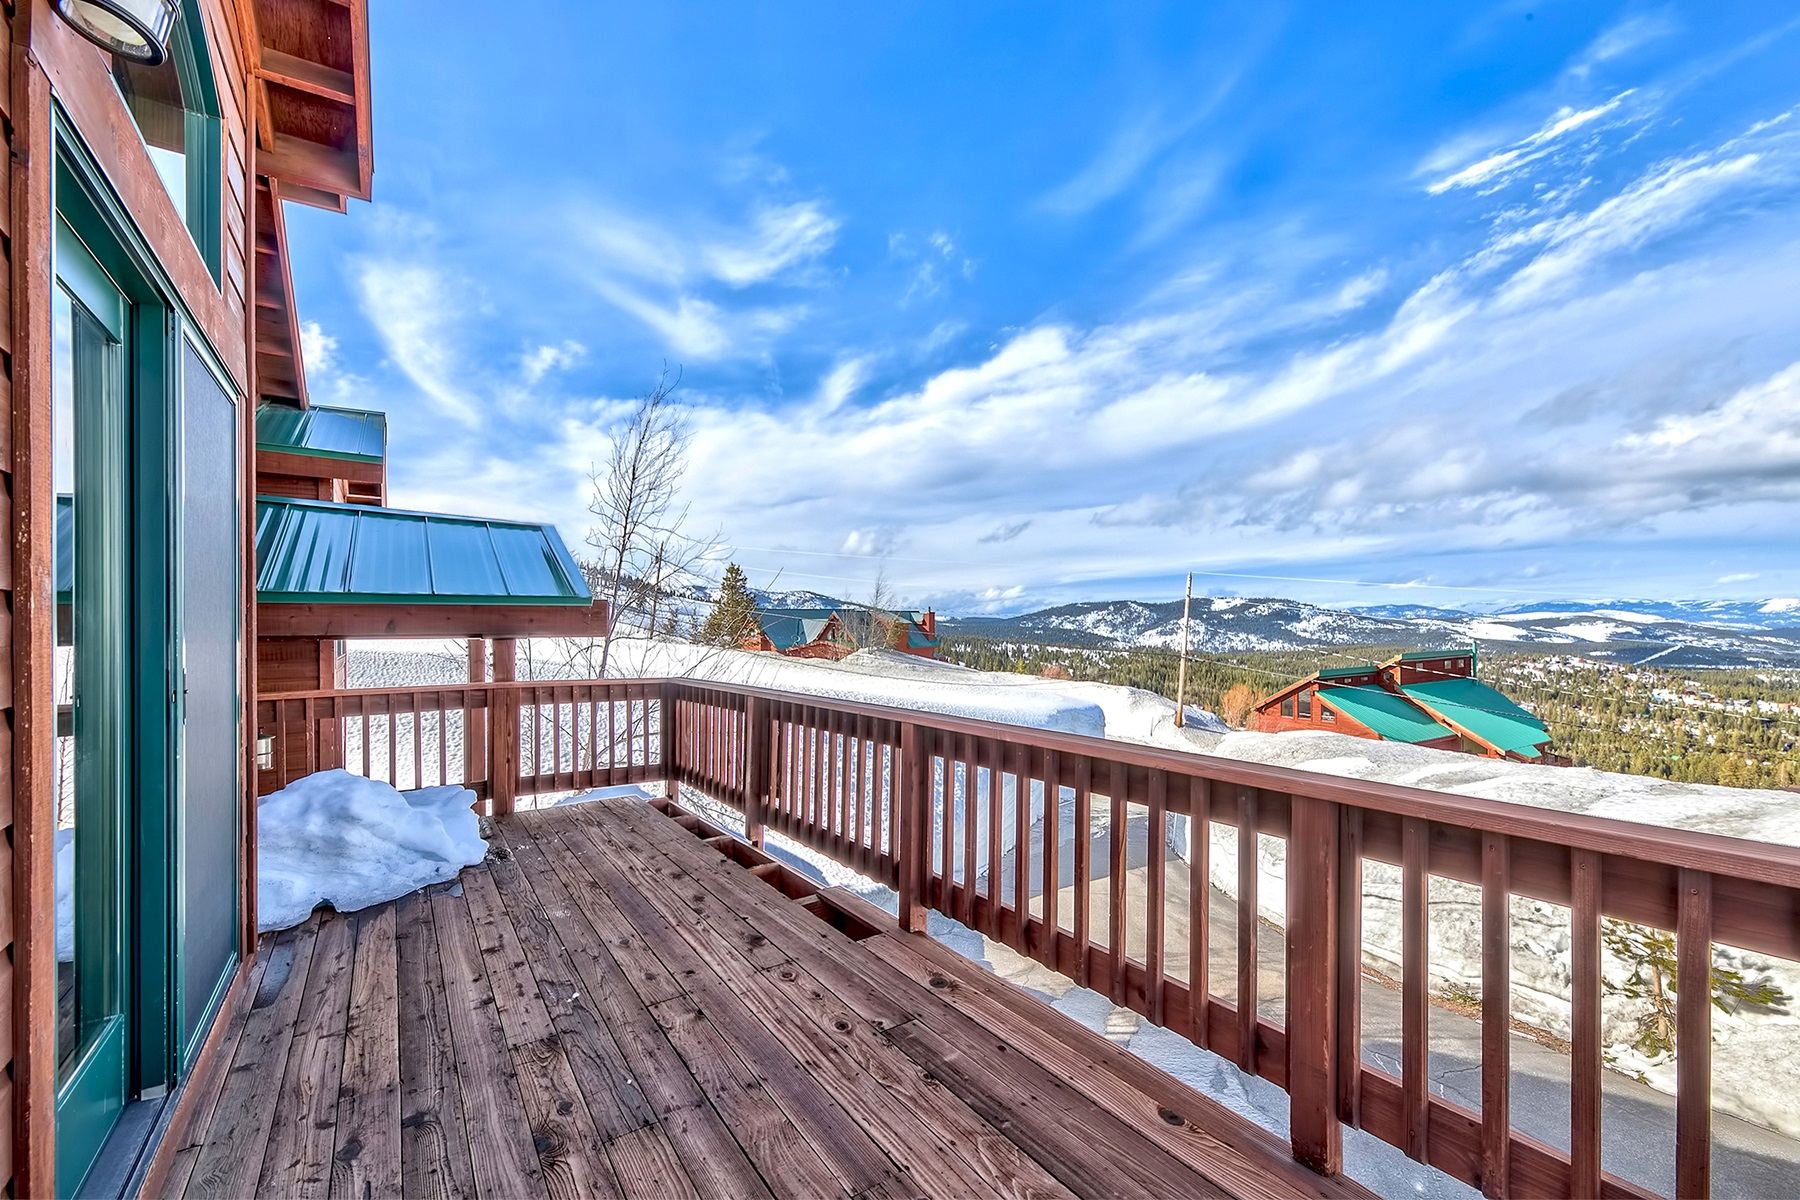 Additional photo for property listing at 14476 Skislope Way, Truckee, CA 14476 Skislope Way Truckee, California 96161 United States